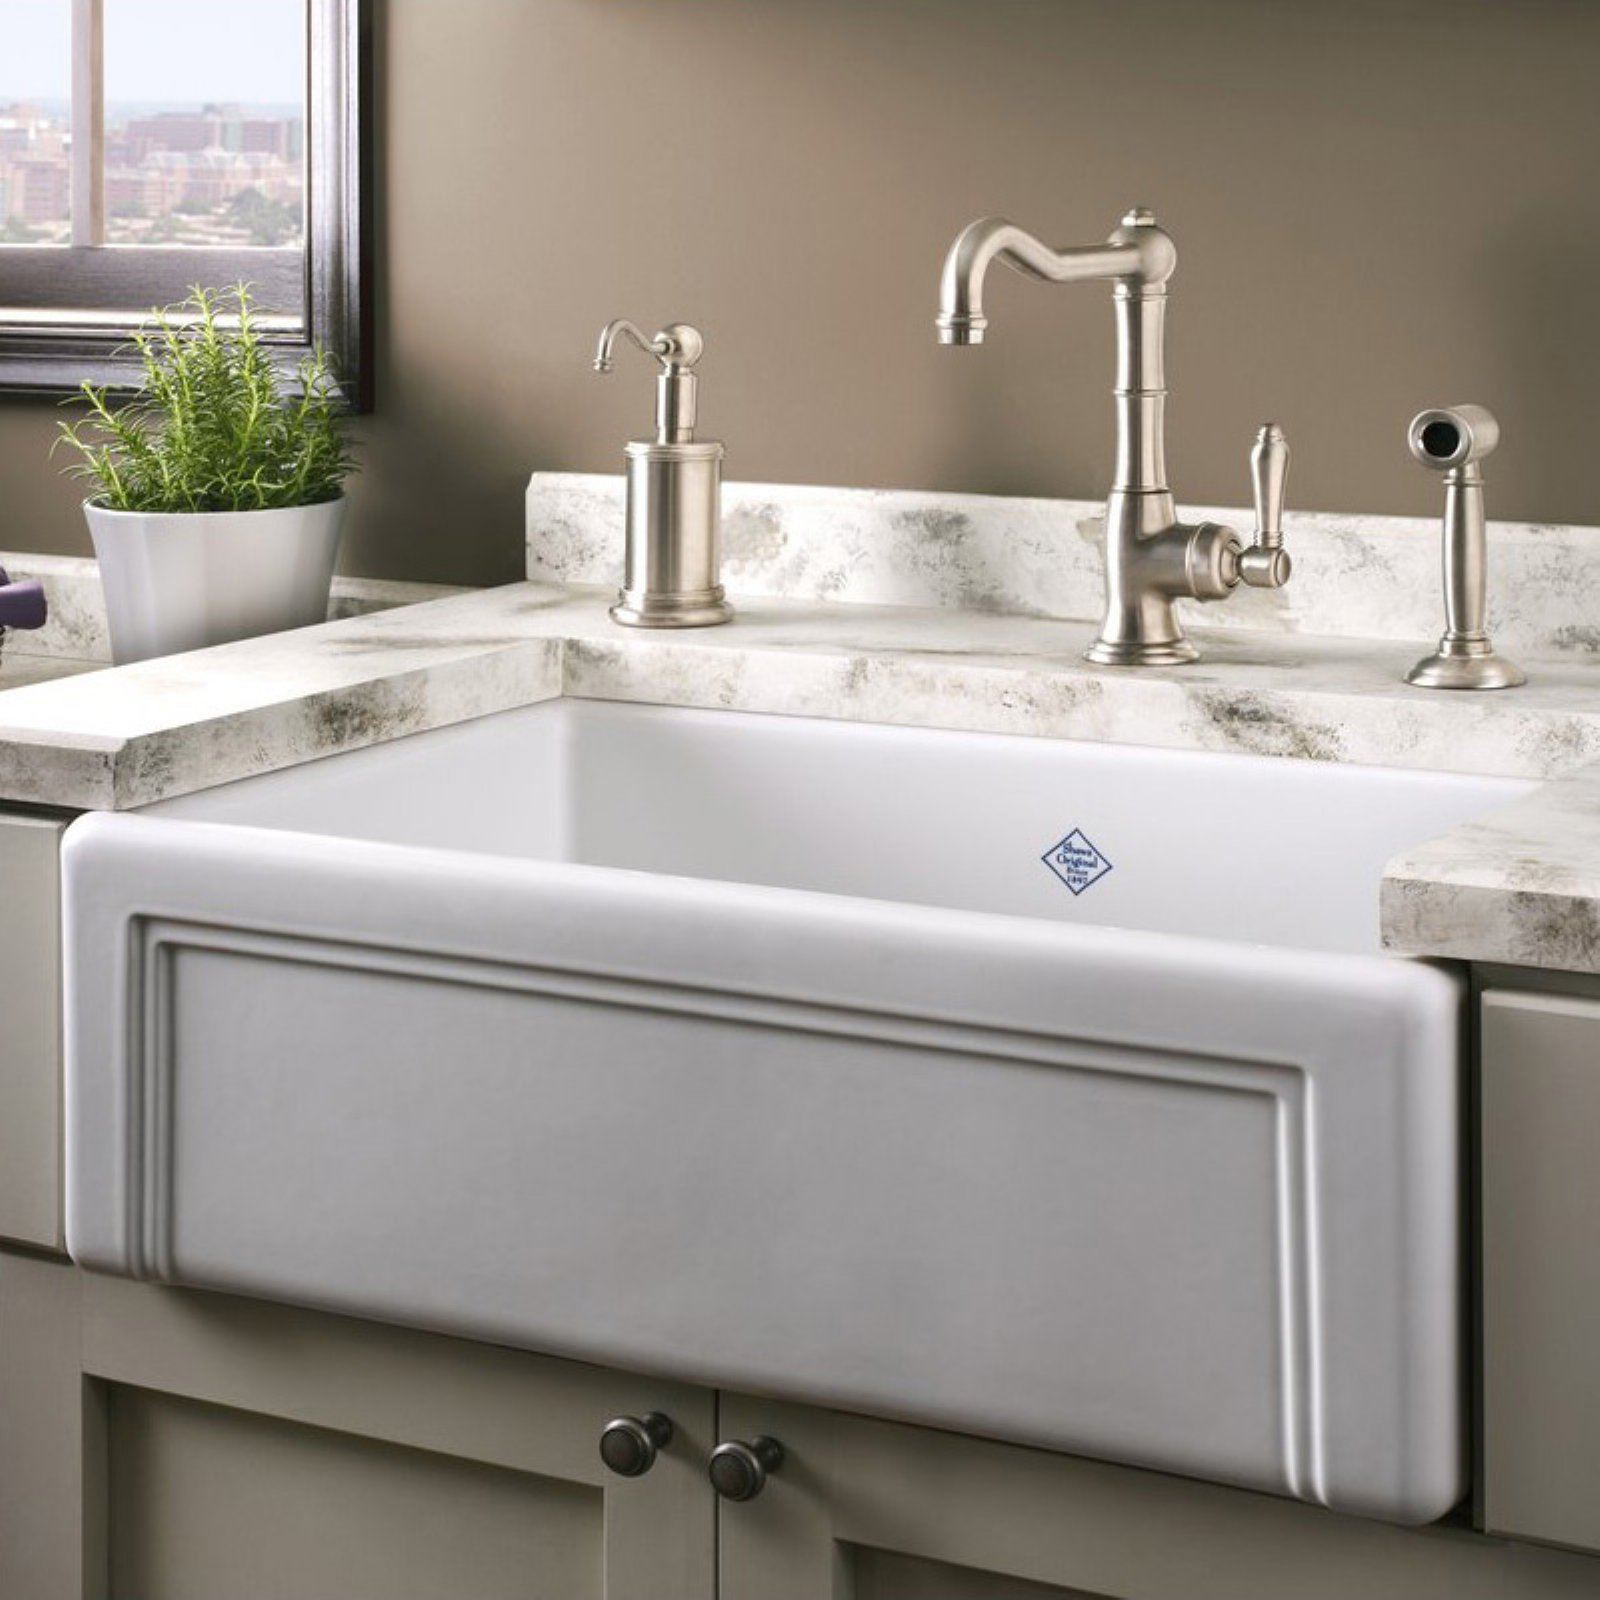 Shaw Farmhouse Sink Reviews Rohl Rc3017 Shaws Single Basin Farmhouse Sink